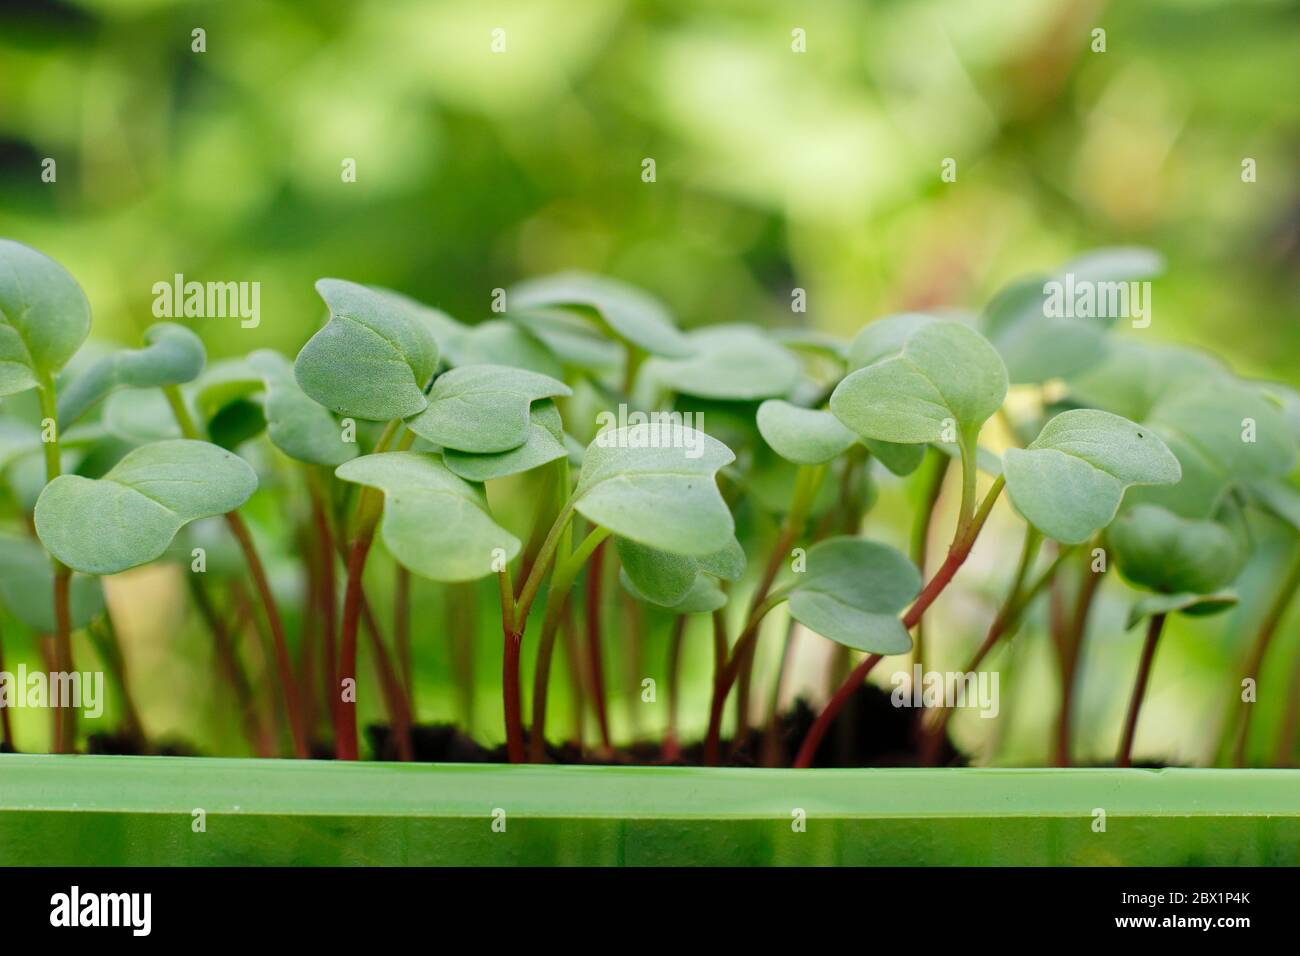 Raphanus sativus 'French Breakfast' seedlings growing in a recycled plastic food container Stock Photo